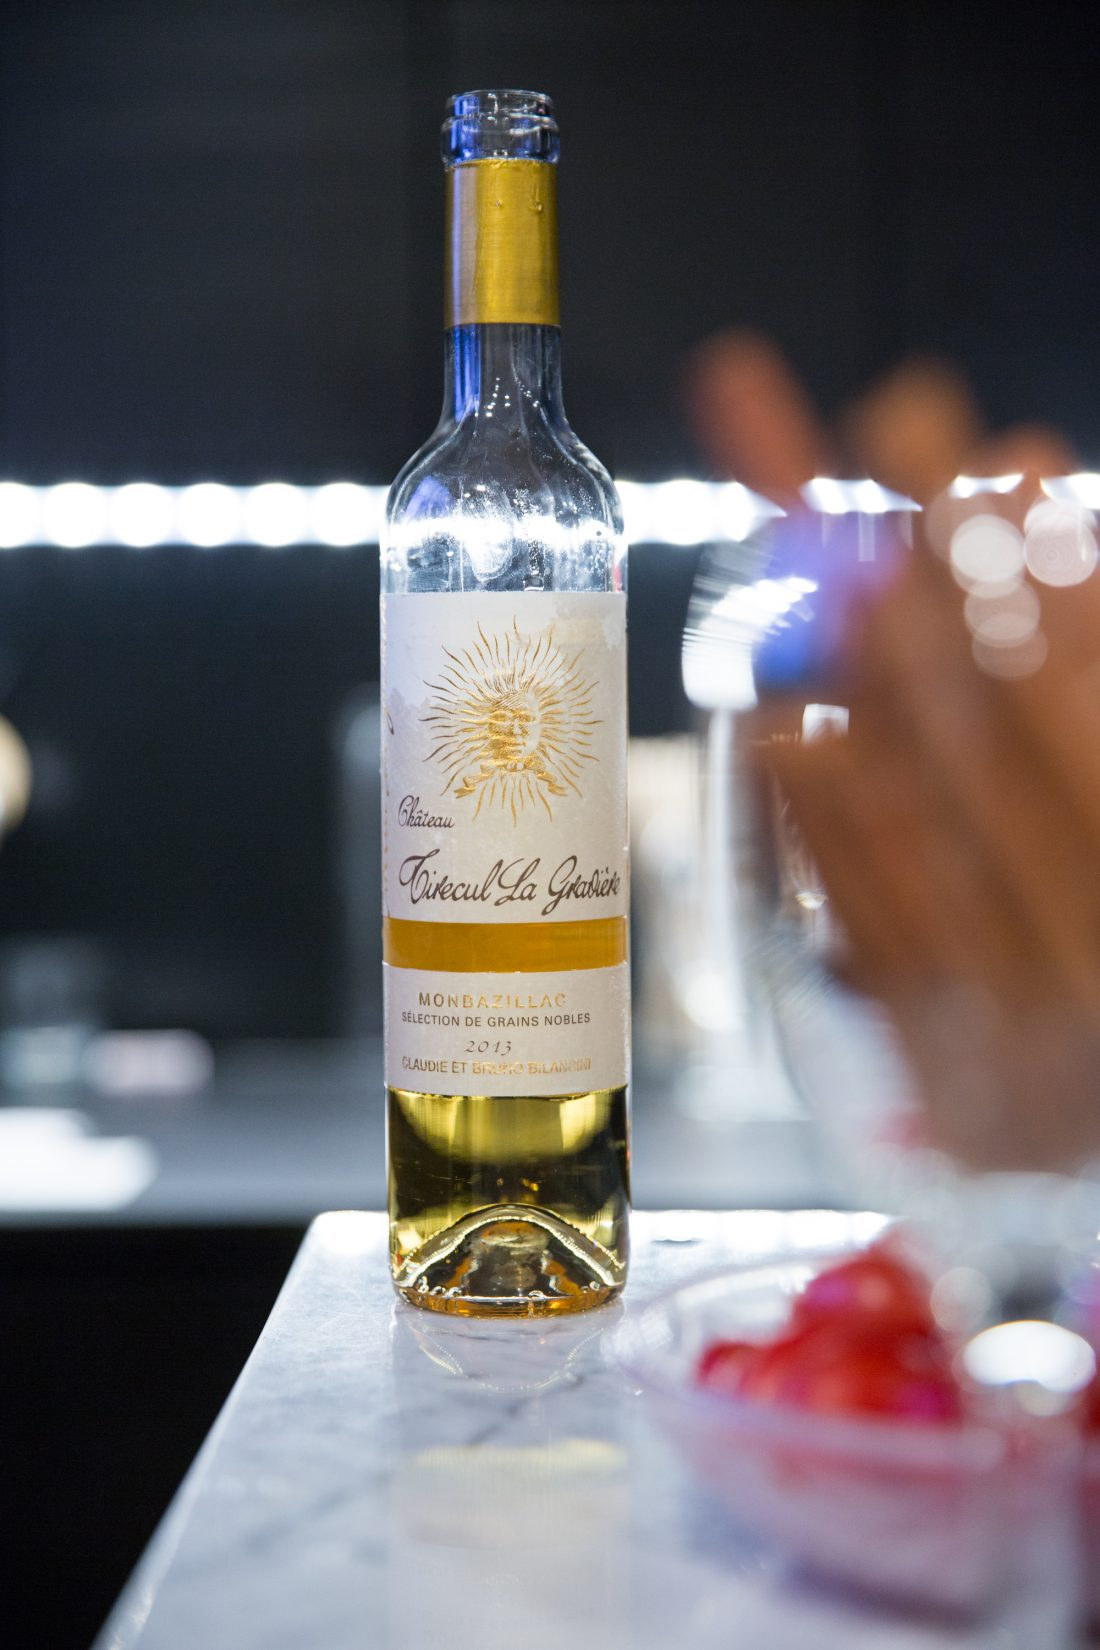 2013, Cuvée Château Tirecul La Gravière, Monbazillac AOP; Photo Credit Lydia Lee Photography